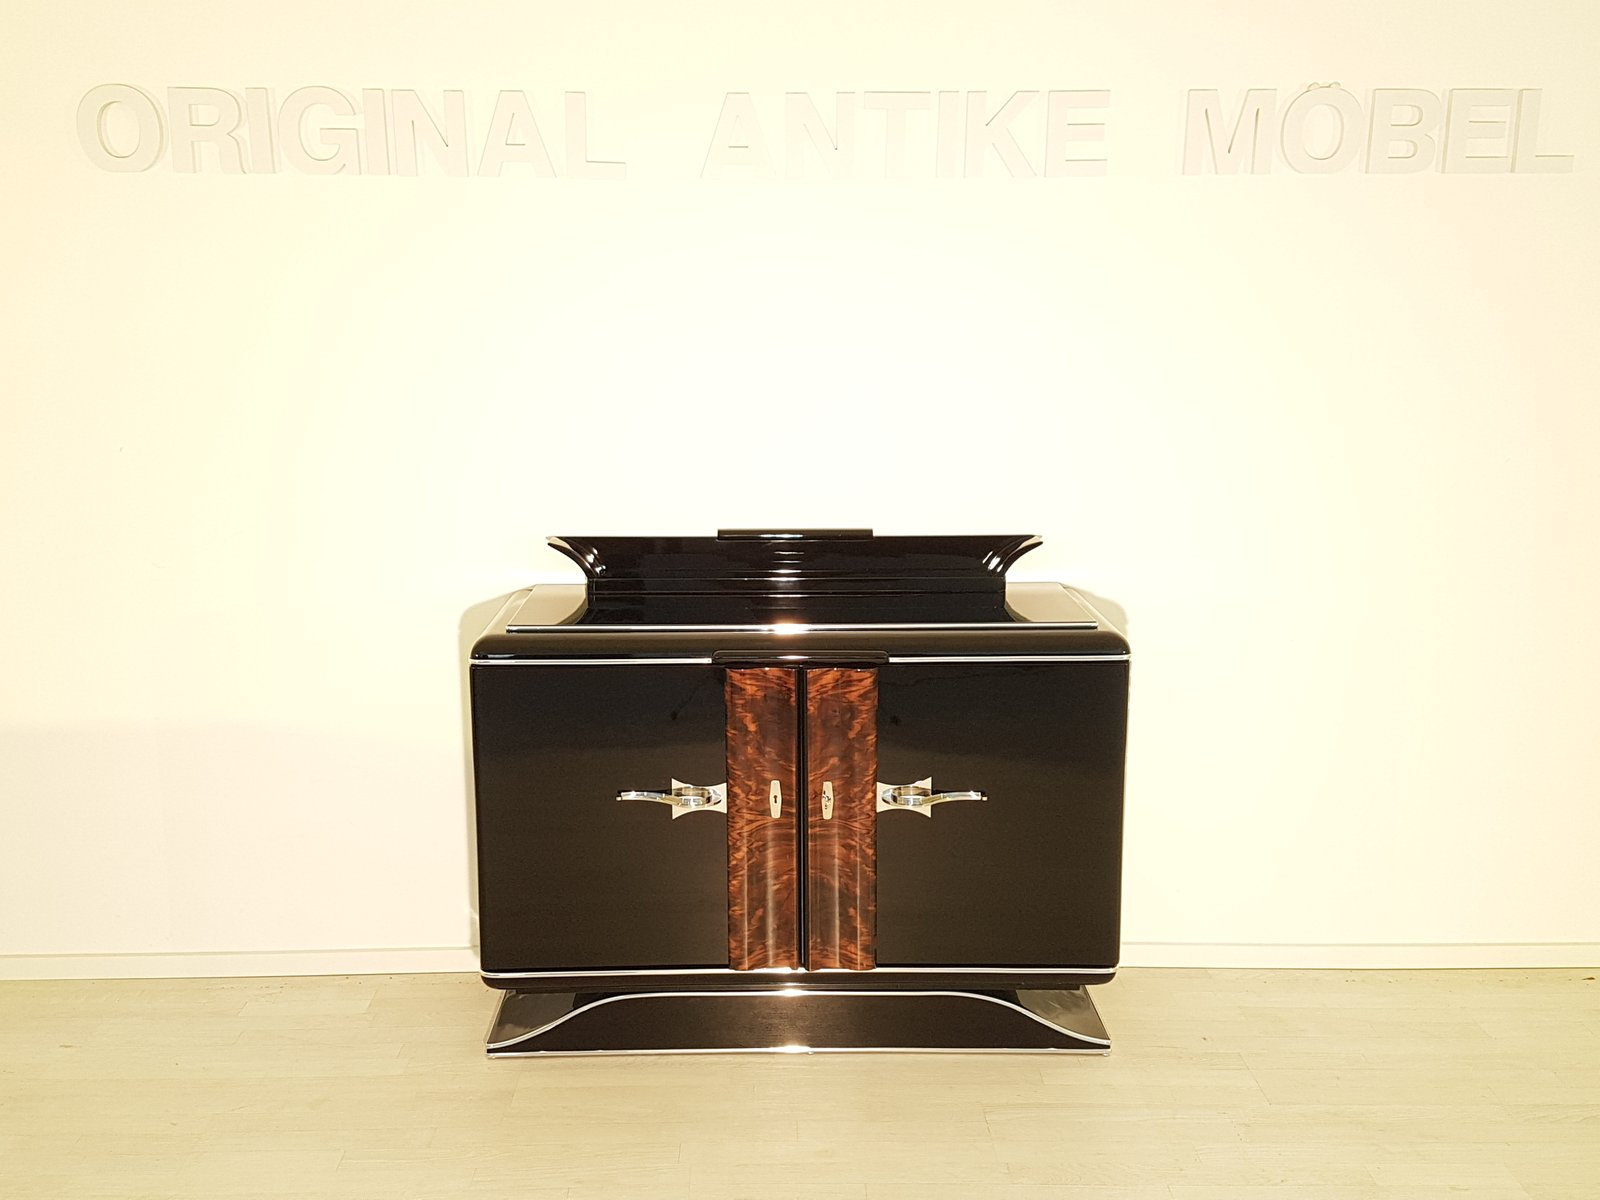 Art Deco Black Commode with Chrome Handles  1920s for sale at Pamono Art Deco Black Commode with Chrome Handles  1920s